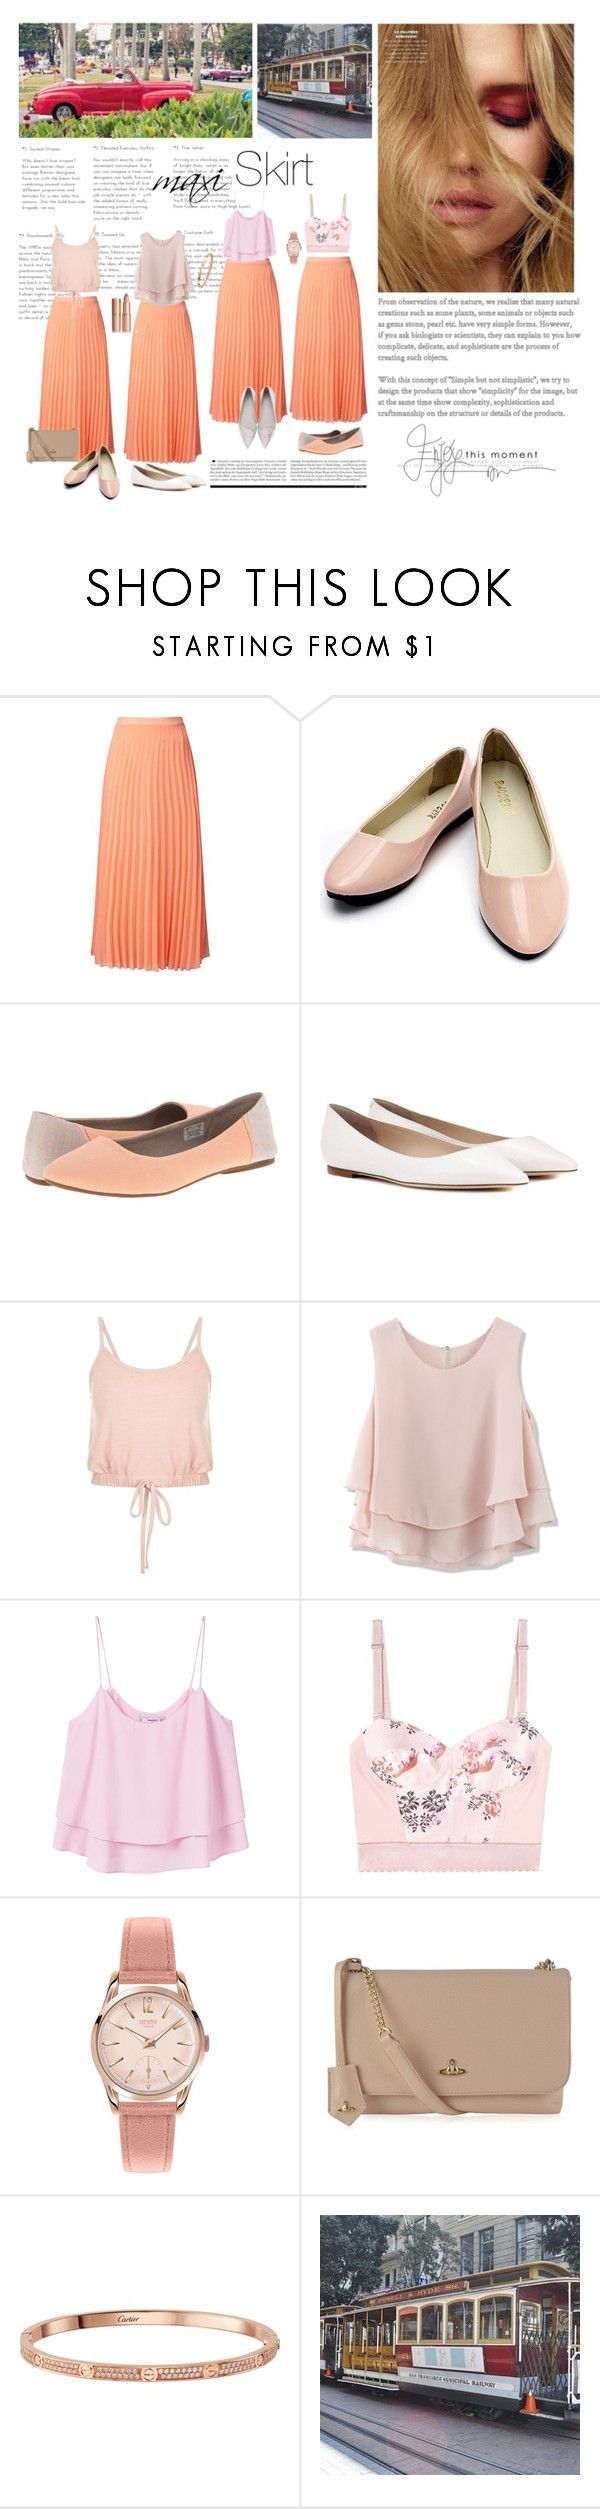 """Coral Maxi Skirt Looks Ideas"" by fashionstudiolondon ❤ liked on Polyvore featuring Miss Selfridge, sanuk, Jimmy Choo, Chicwish, MANGO, STELLA McCARTNEY, Henry London, Vivienne Westwood, Sophia Webster and skirt"